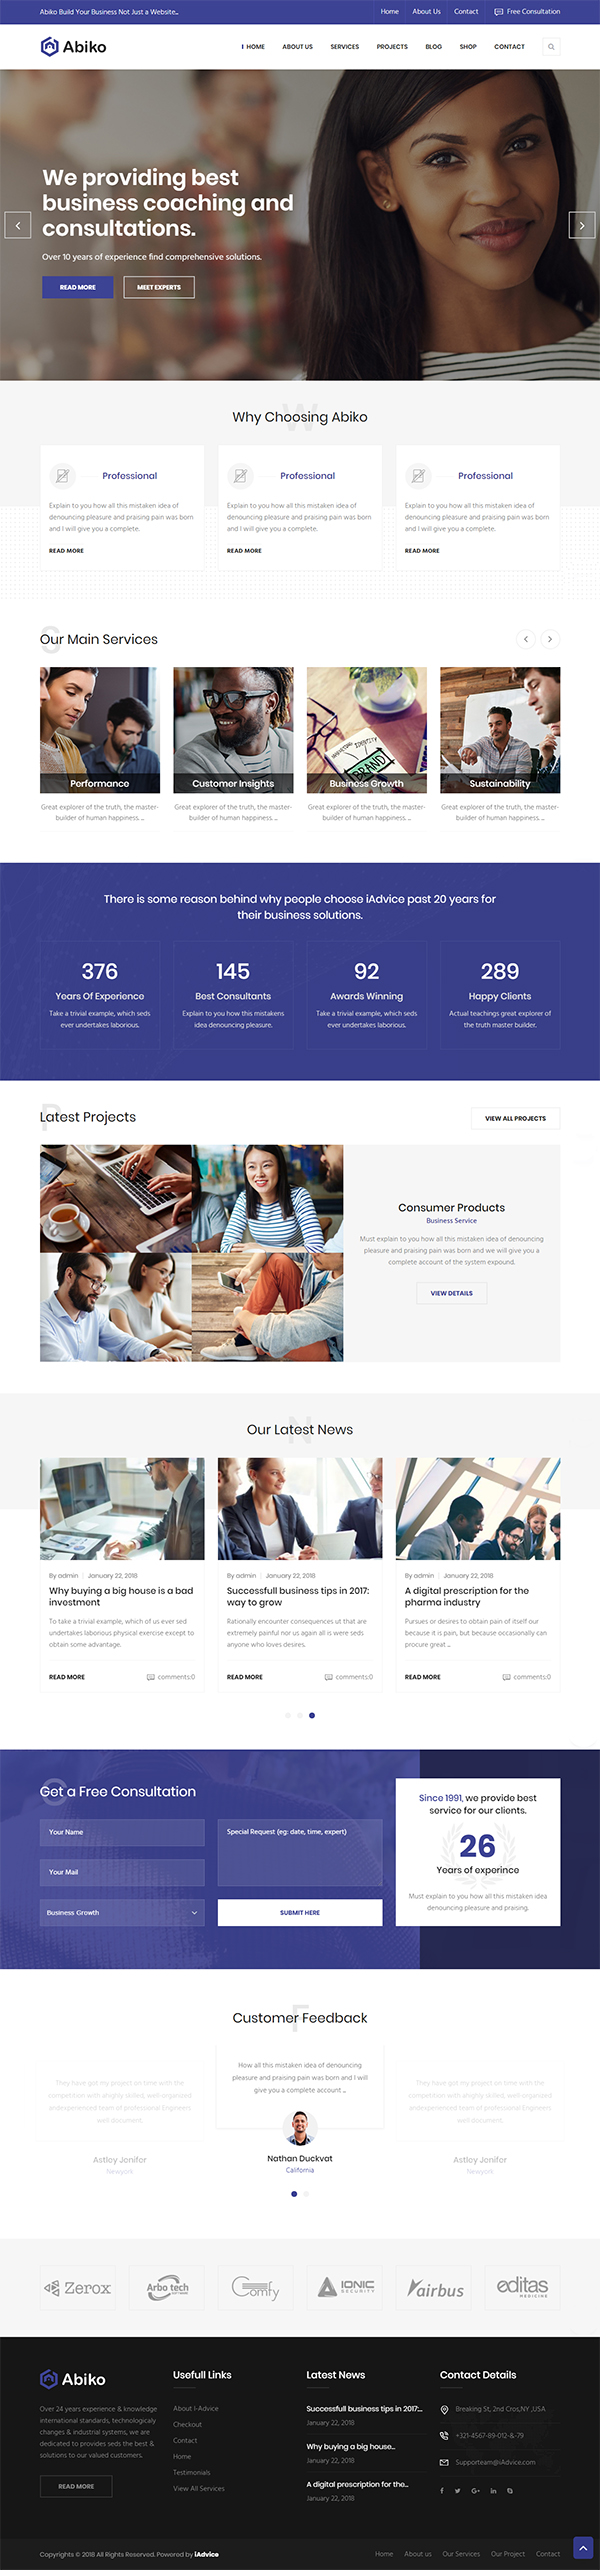 Abiko - Business Consulting WordPress Theme